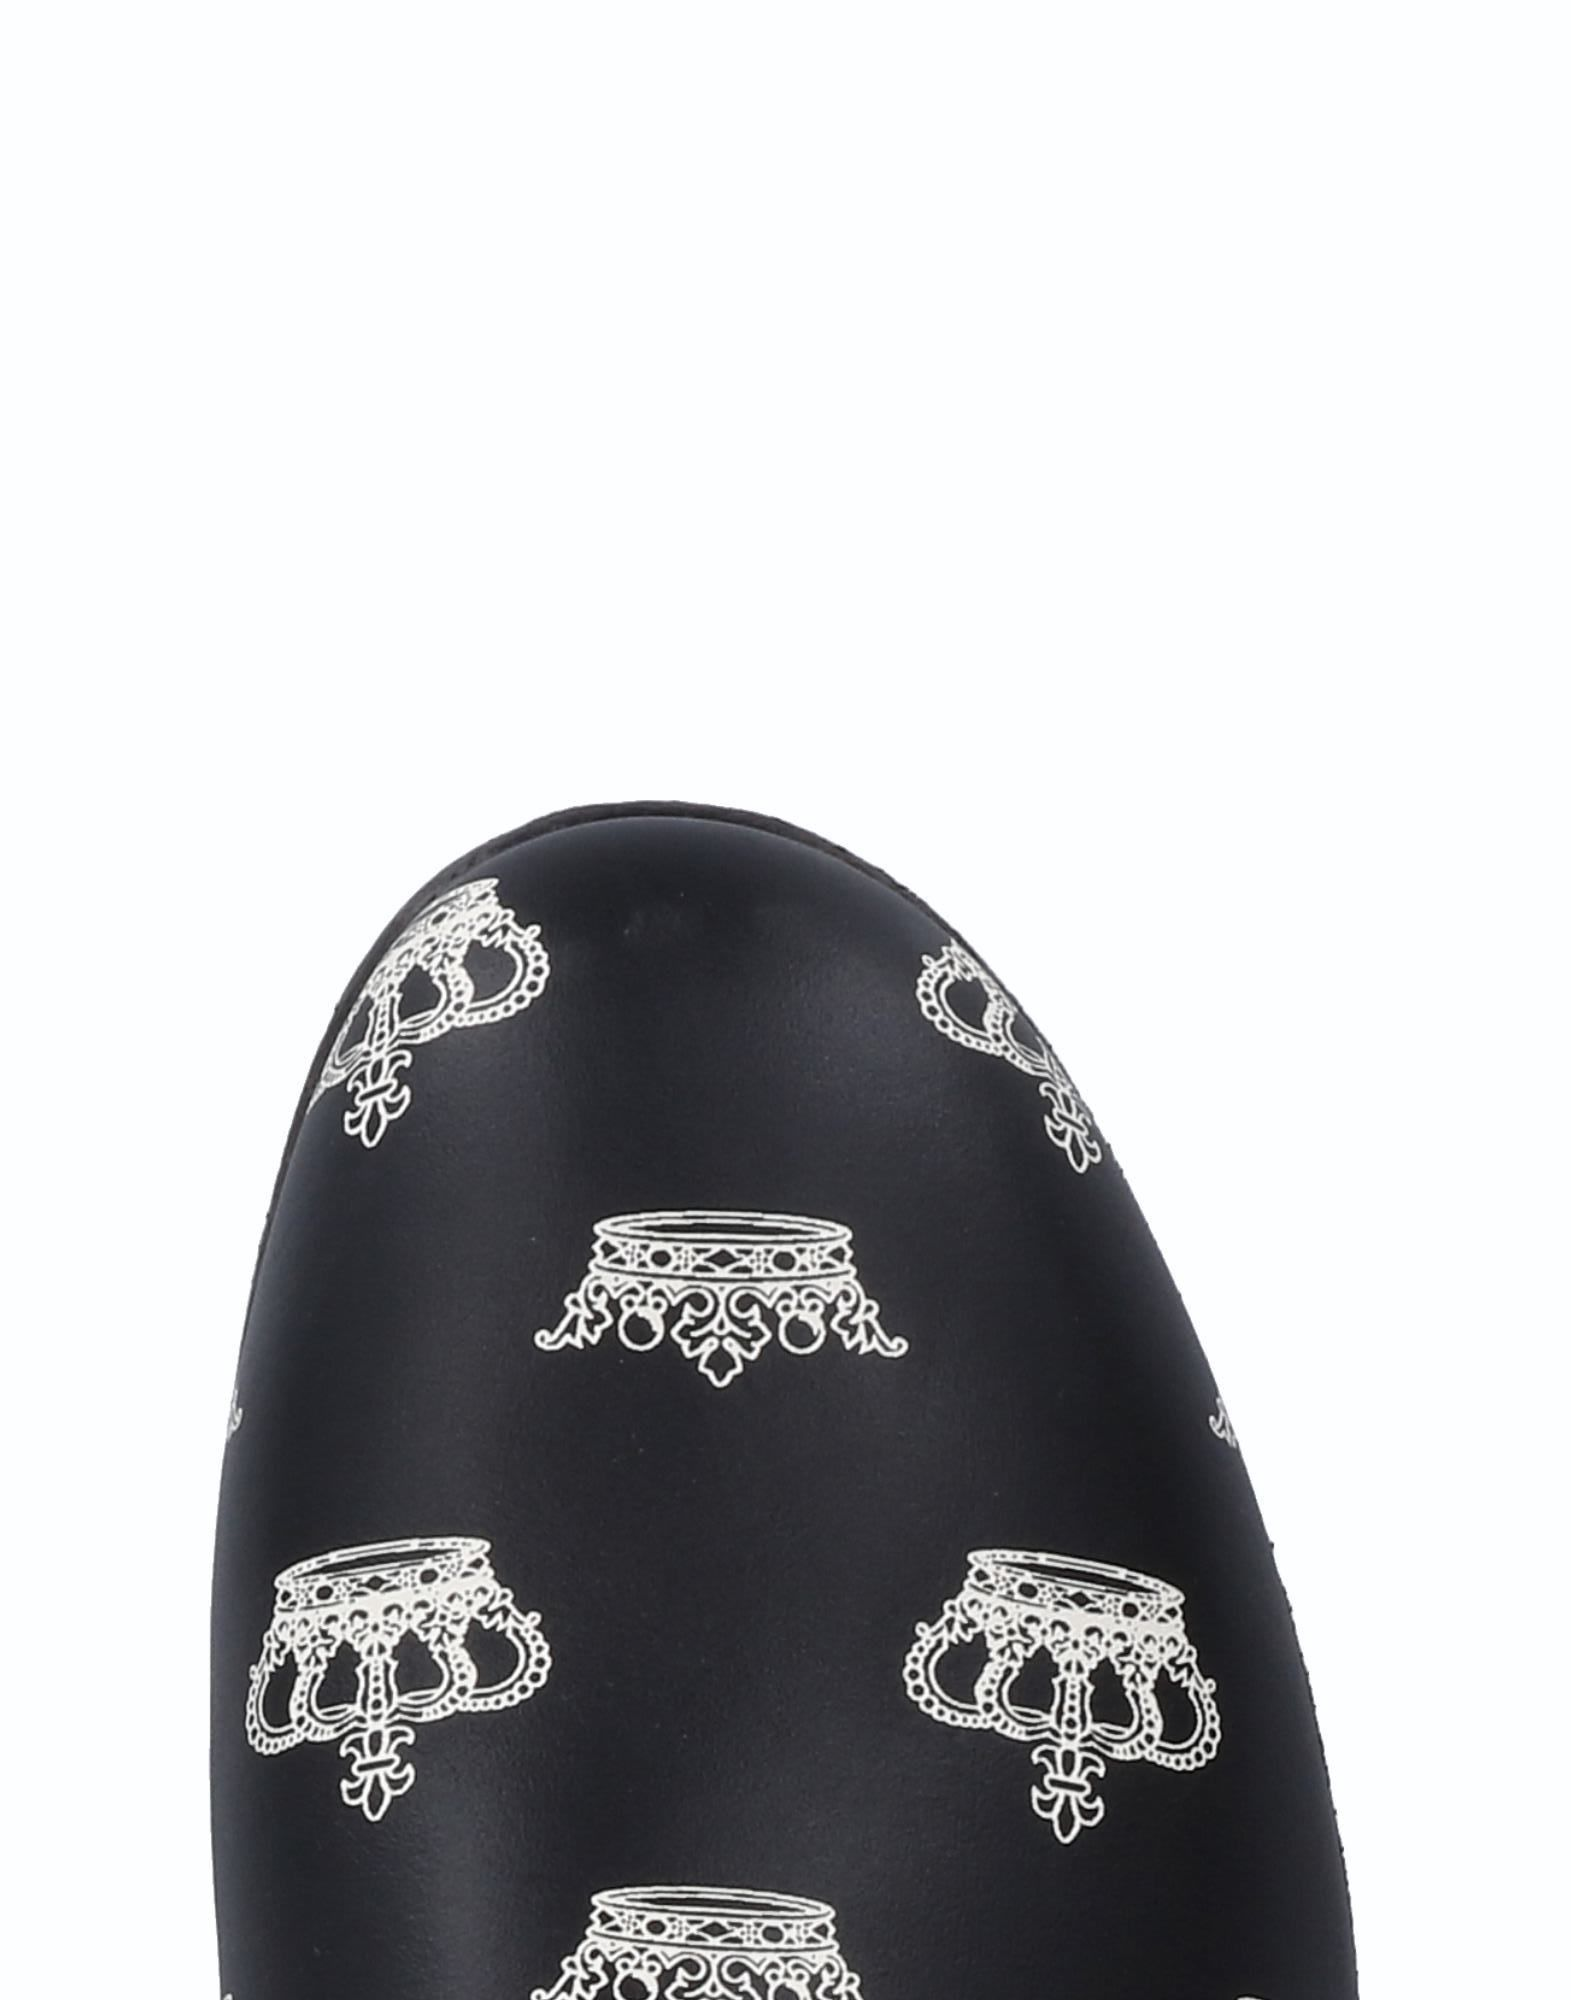 Dolce & Gabbana Loafers Loafers Loafers - Men Dolce & Gabbana Loafers online on  Canada - 11515478MK a46b96